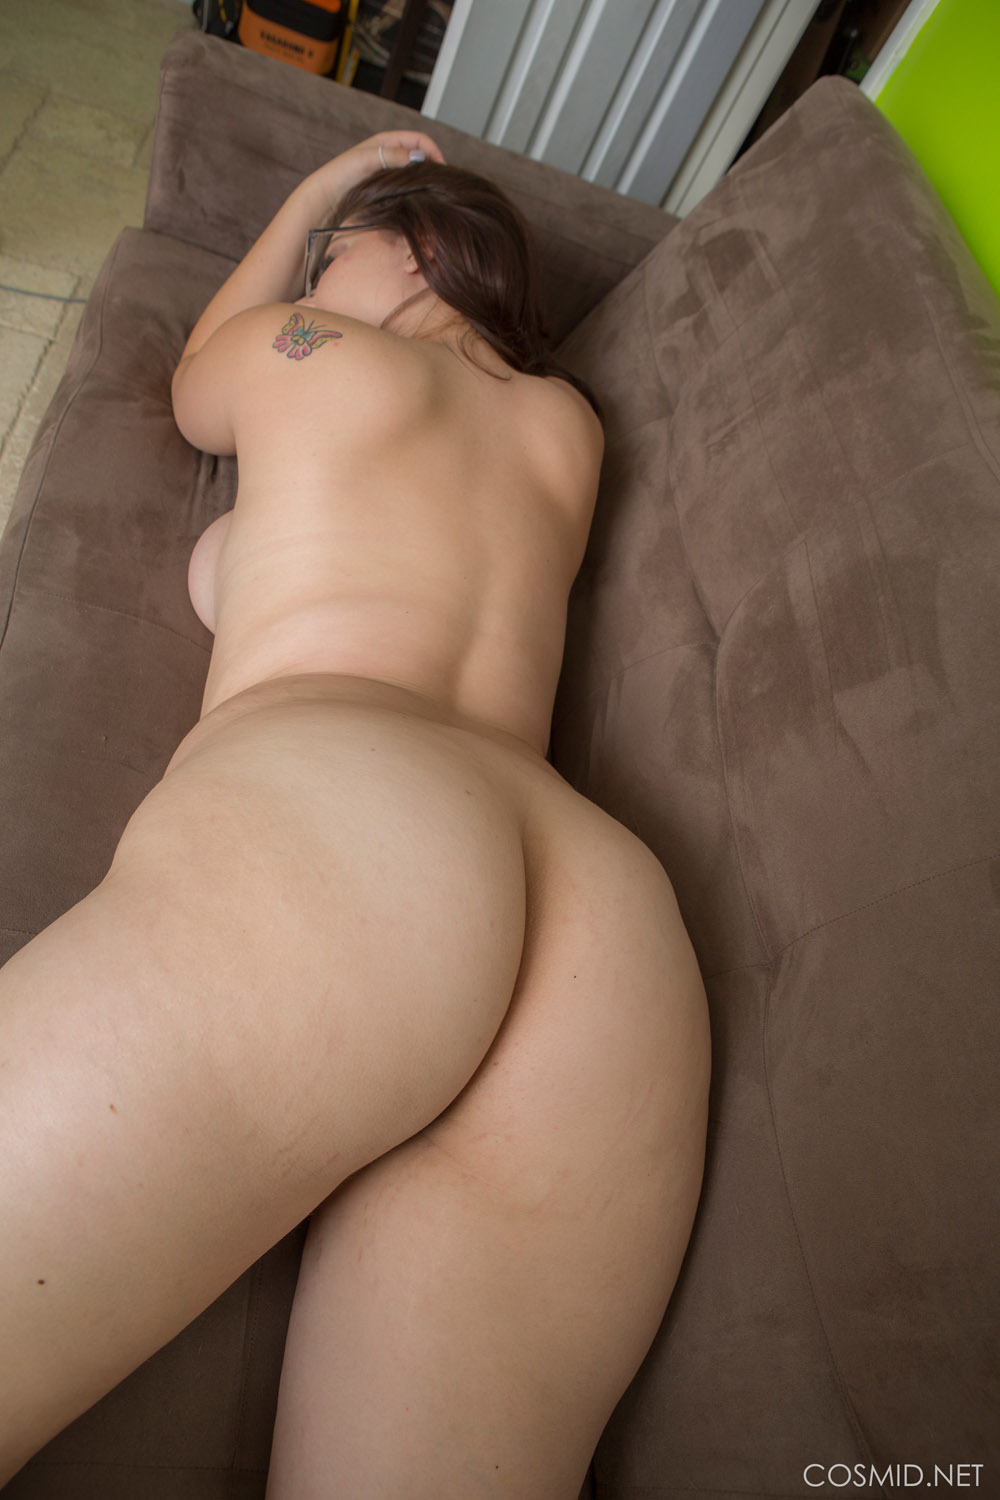 Nude ivana videos think only!